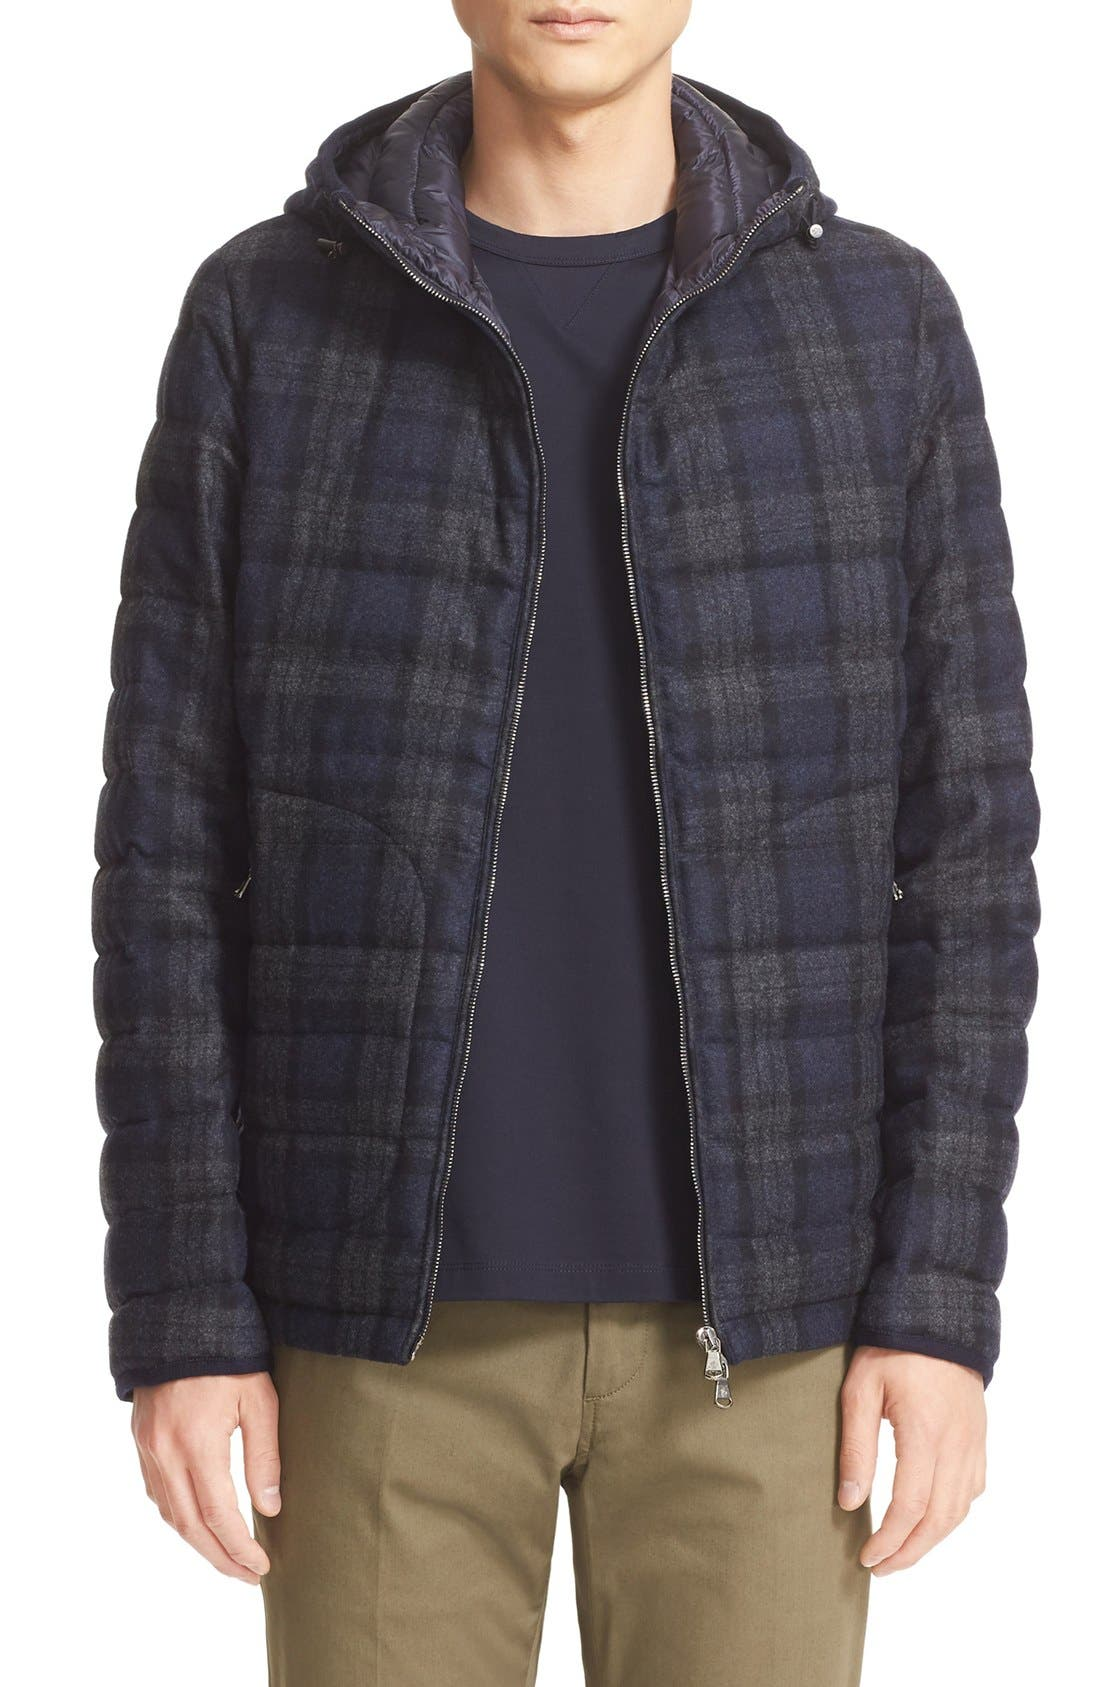 MONCLER 'Blanchard' Tartan Plaid Wool Down Jacket